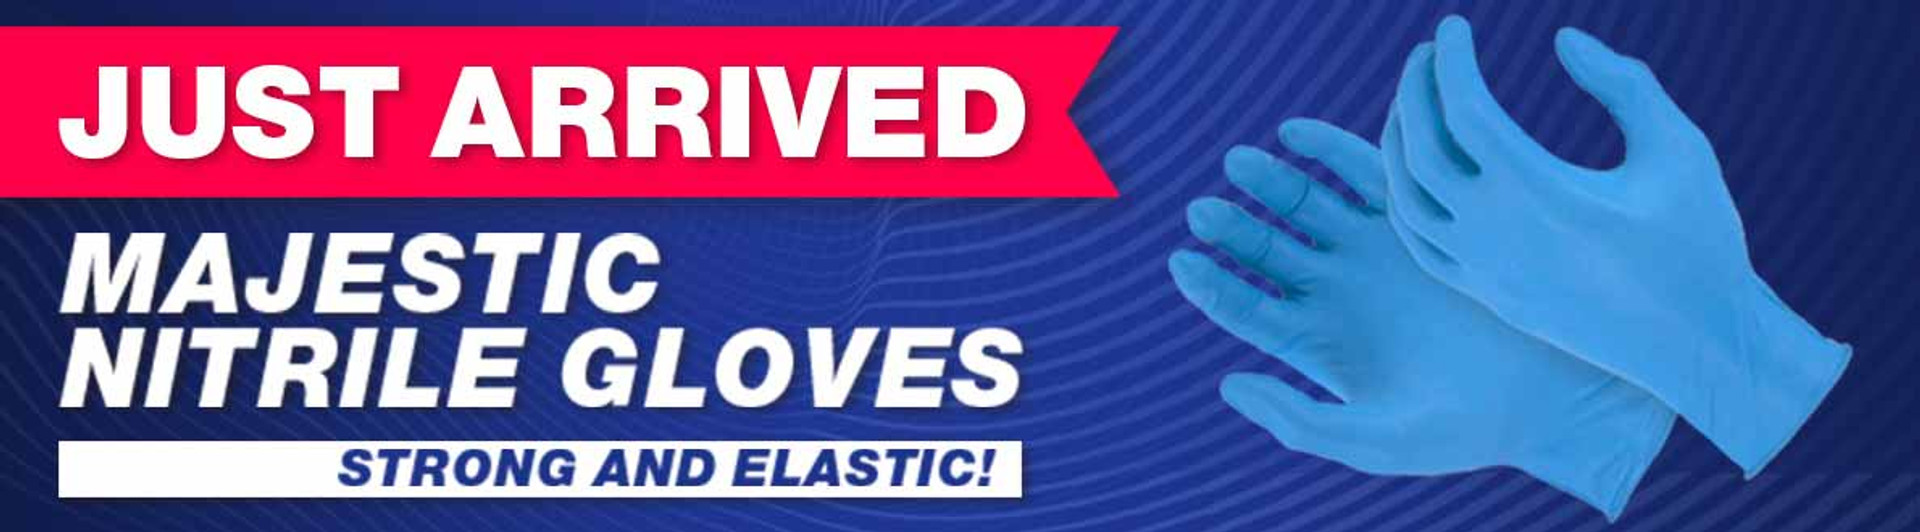 majestic disposable nitrile gloves